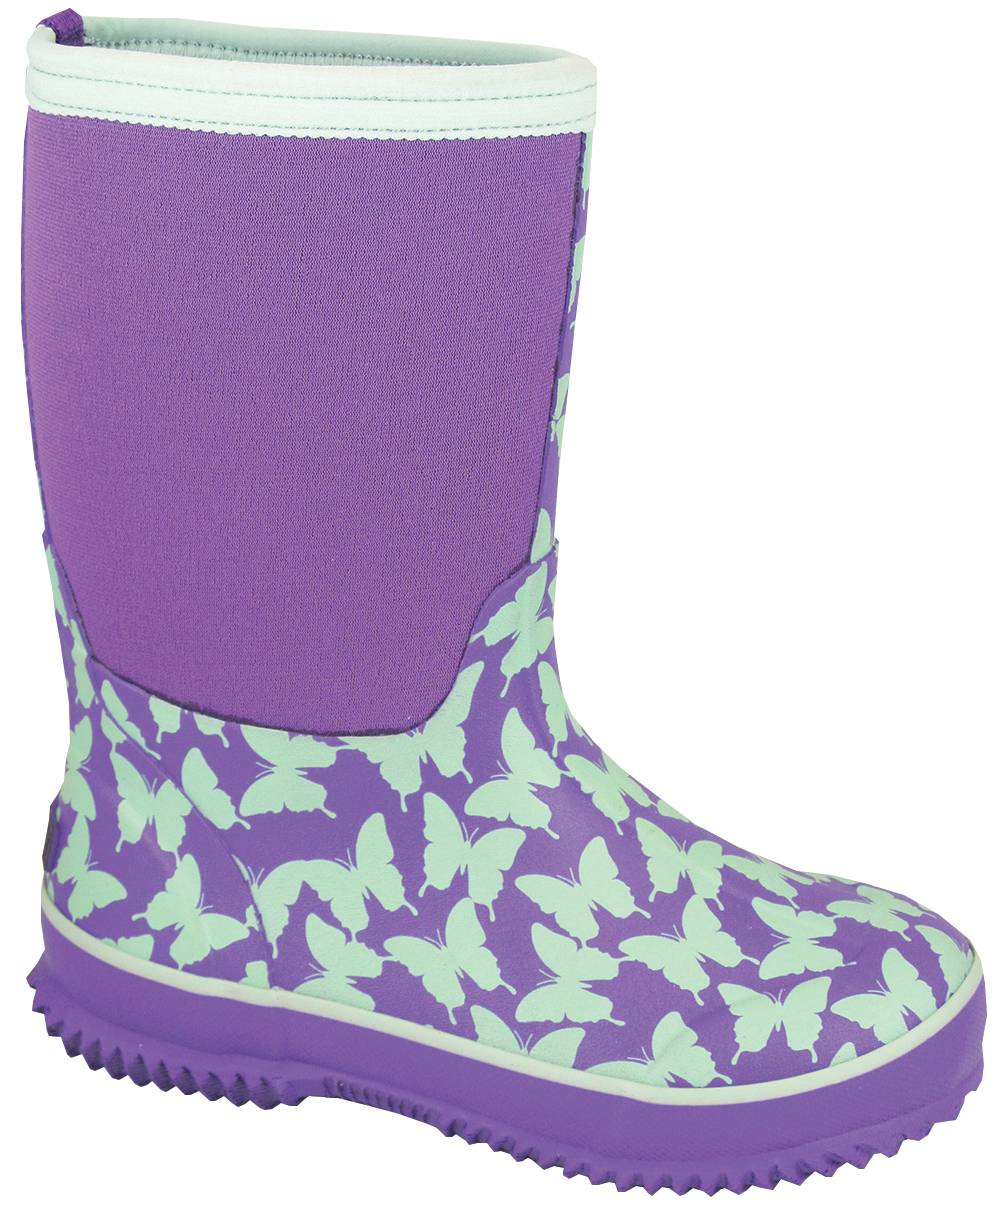 Smoky Mountain Toddler Butterfly Amphibian Boots - Light Green